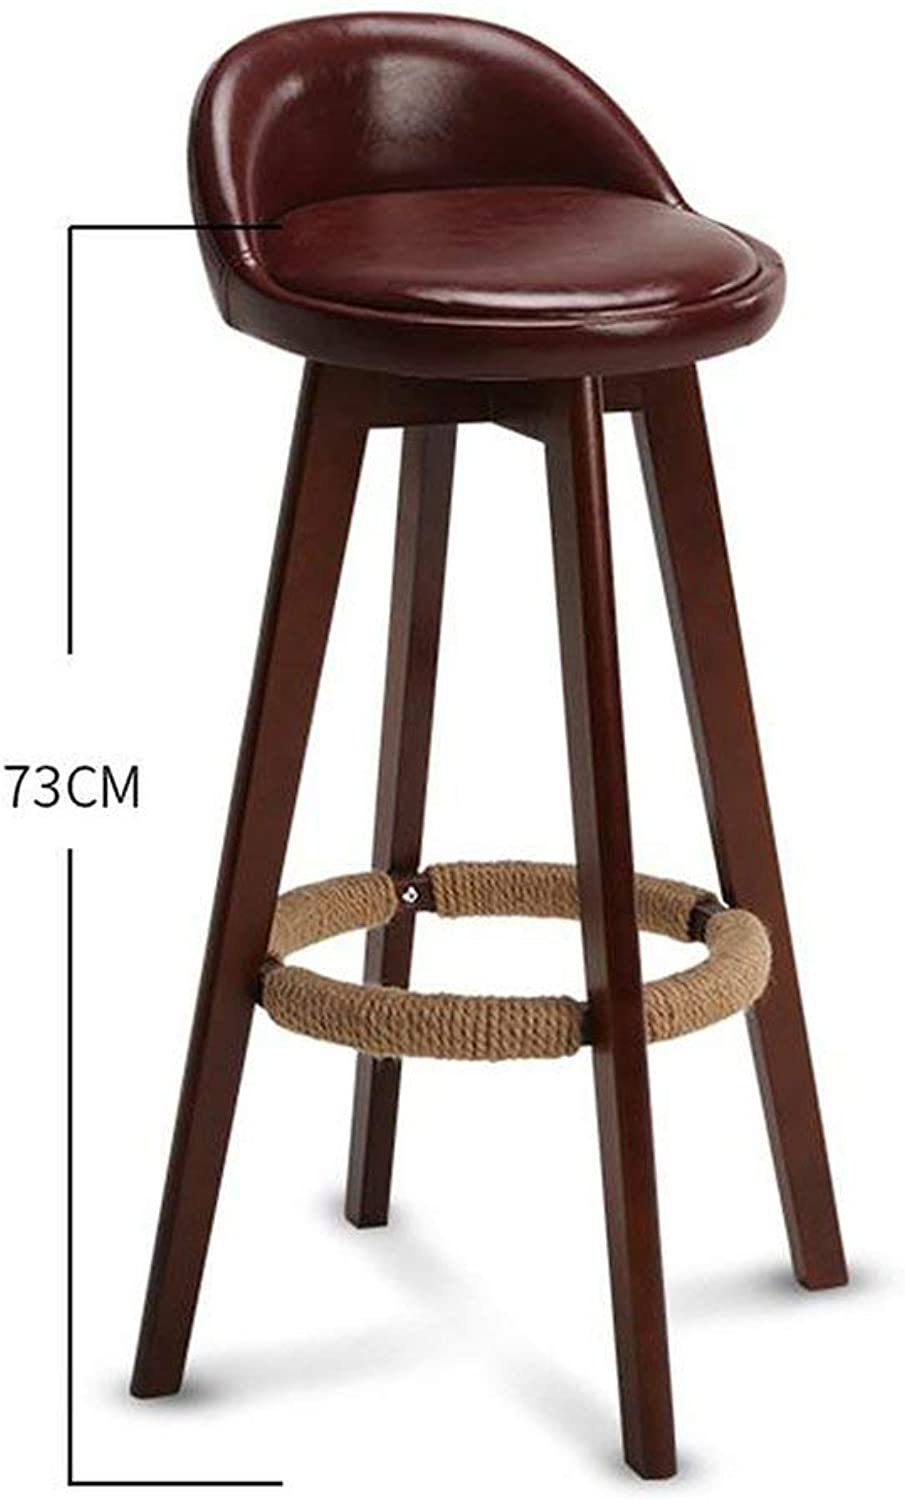 Tthappy76 Bar Stool Nordic Modern Minimalist Household Solid Wood High Stool Bar Stool Bar Chair Leisure Back Chair Stool,Style 19